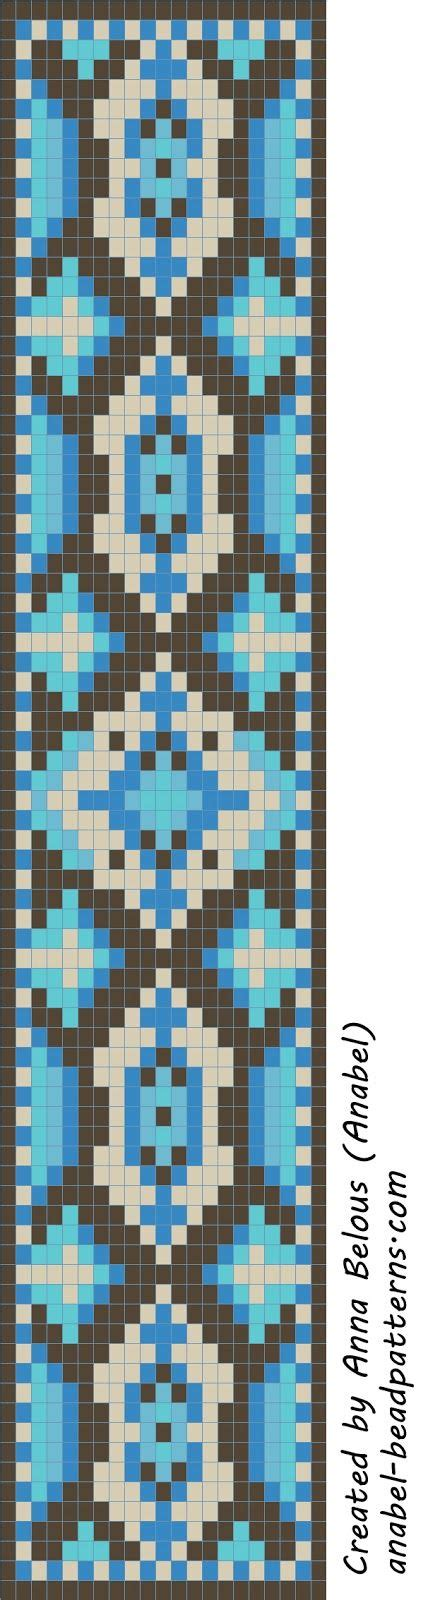 bead loom pattern maker online 334 best images about beading patterns on pinterest loom